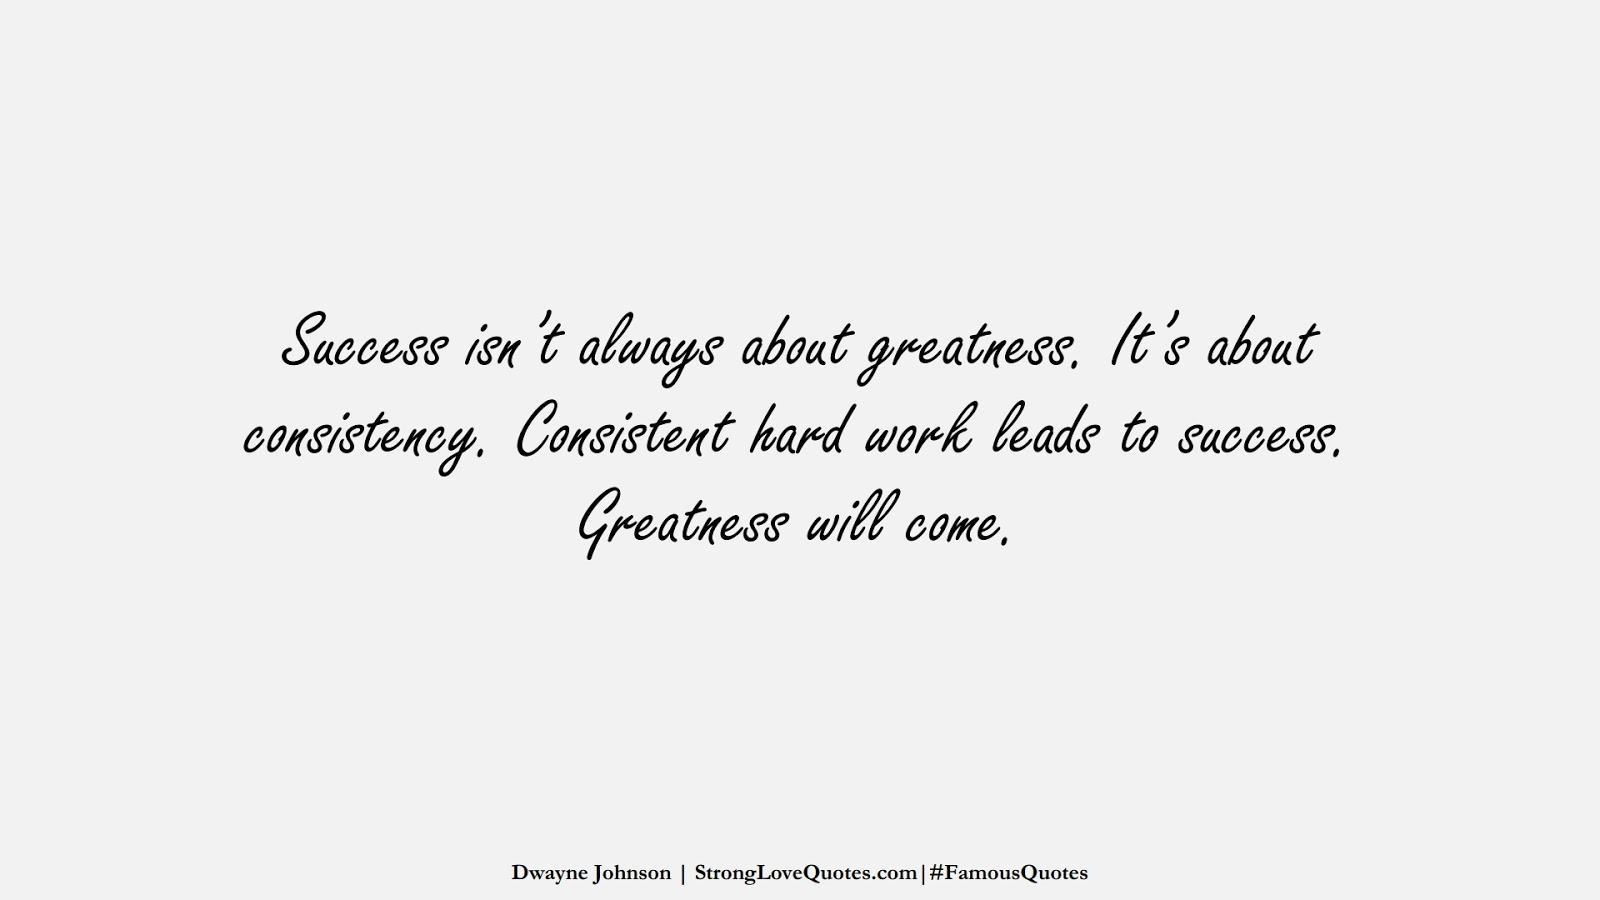 Success isn't always about greatness. It's about consistency. Consistent hard work leads to success. Greatness will come. (Dwayne Johnson);  #FamousQuotes